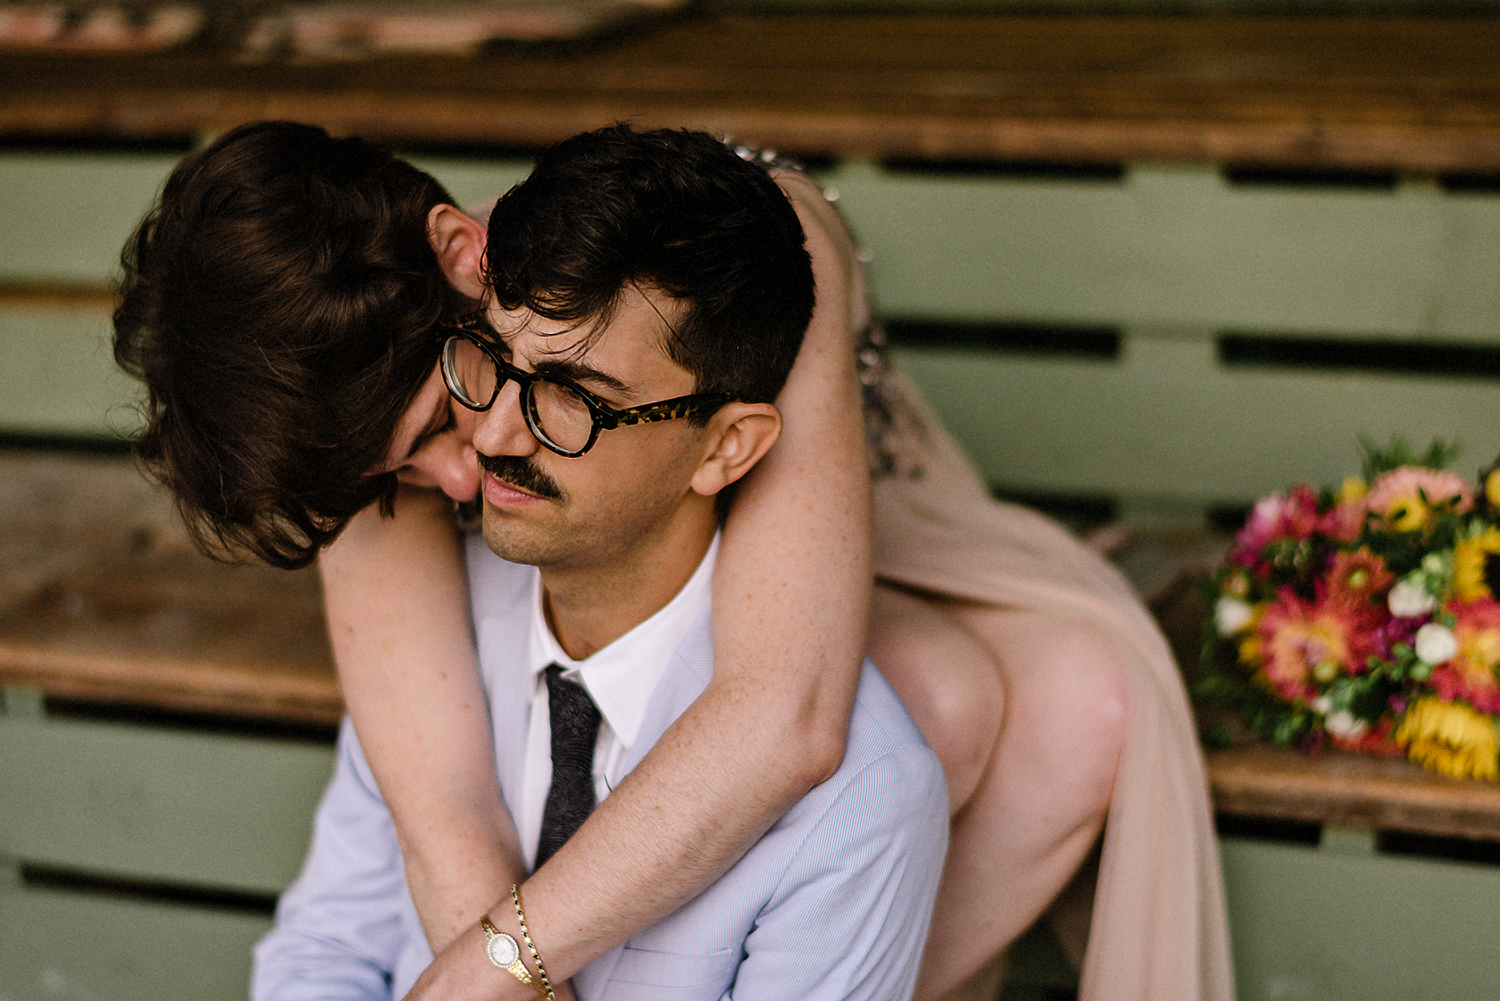 Best-Wedding-Photographers-in-Toronto-with-Photojournalistic-Documentary-Style-3B-Photography-Brian-Batista-Bettencourt-Intimate-Vintage-Wedding-at-Toronto-Island-Cafe-Clubhouse-Sunset-portraits-quiet-moment-intimate-candid-Groom-emotion.jpg